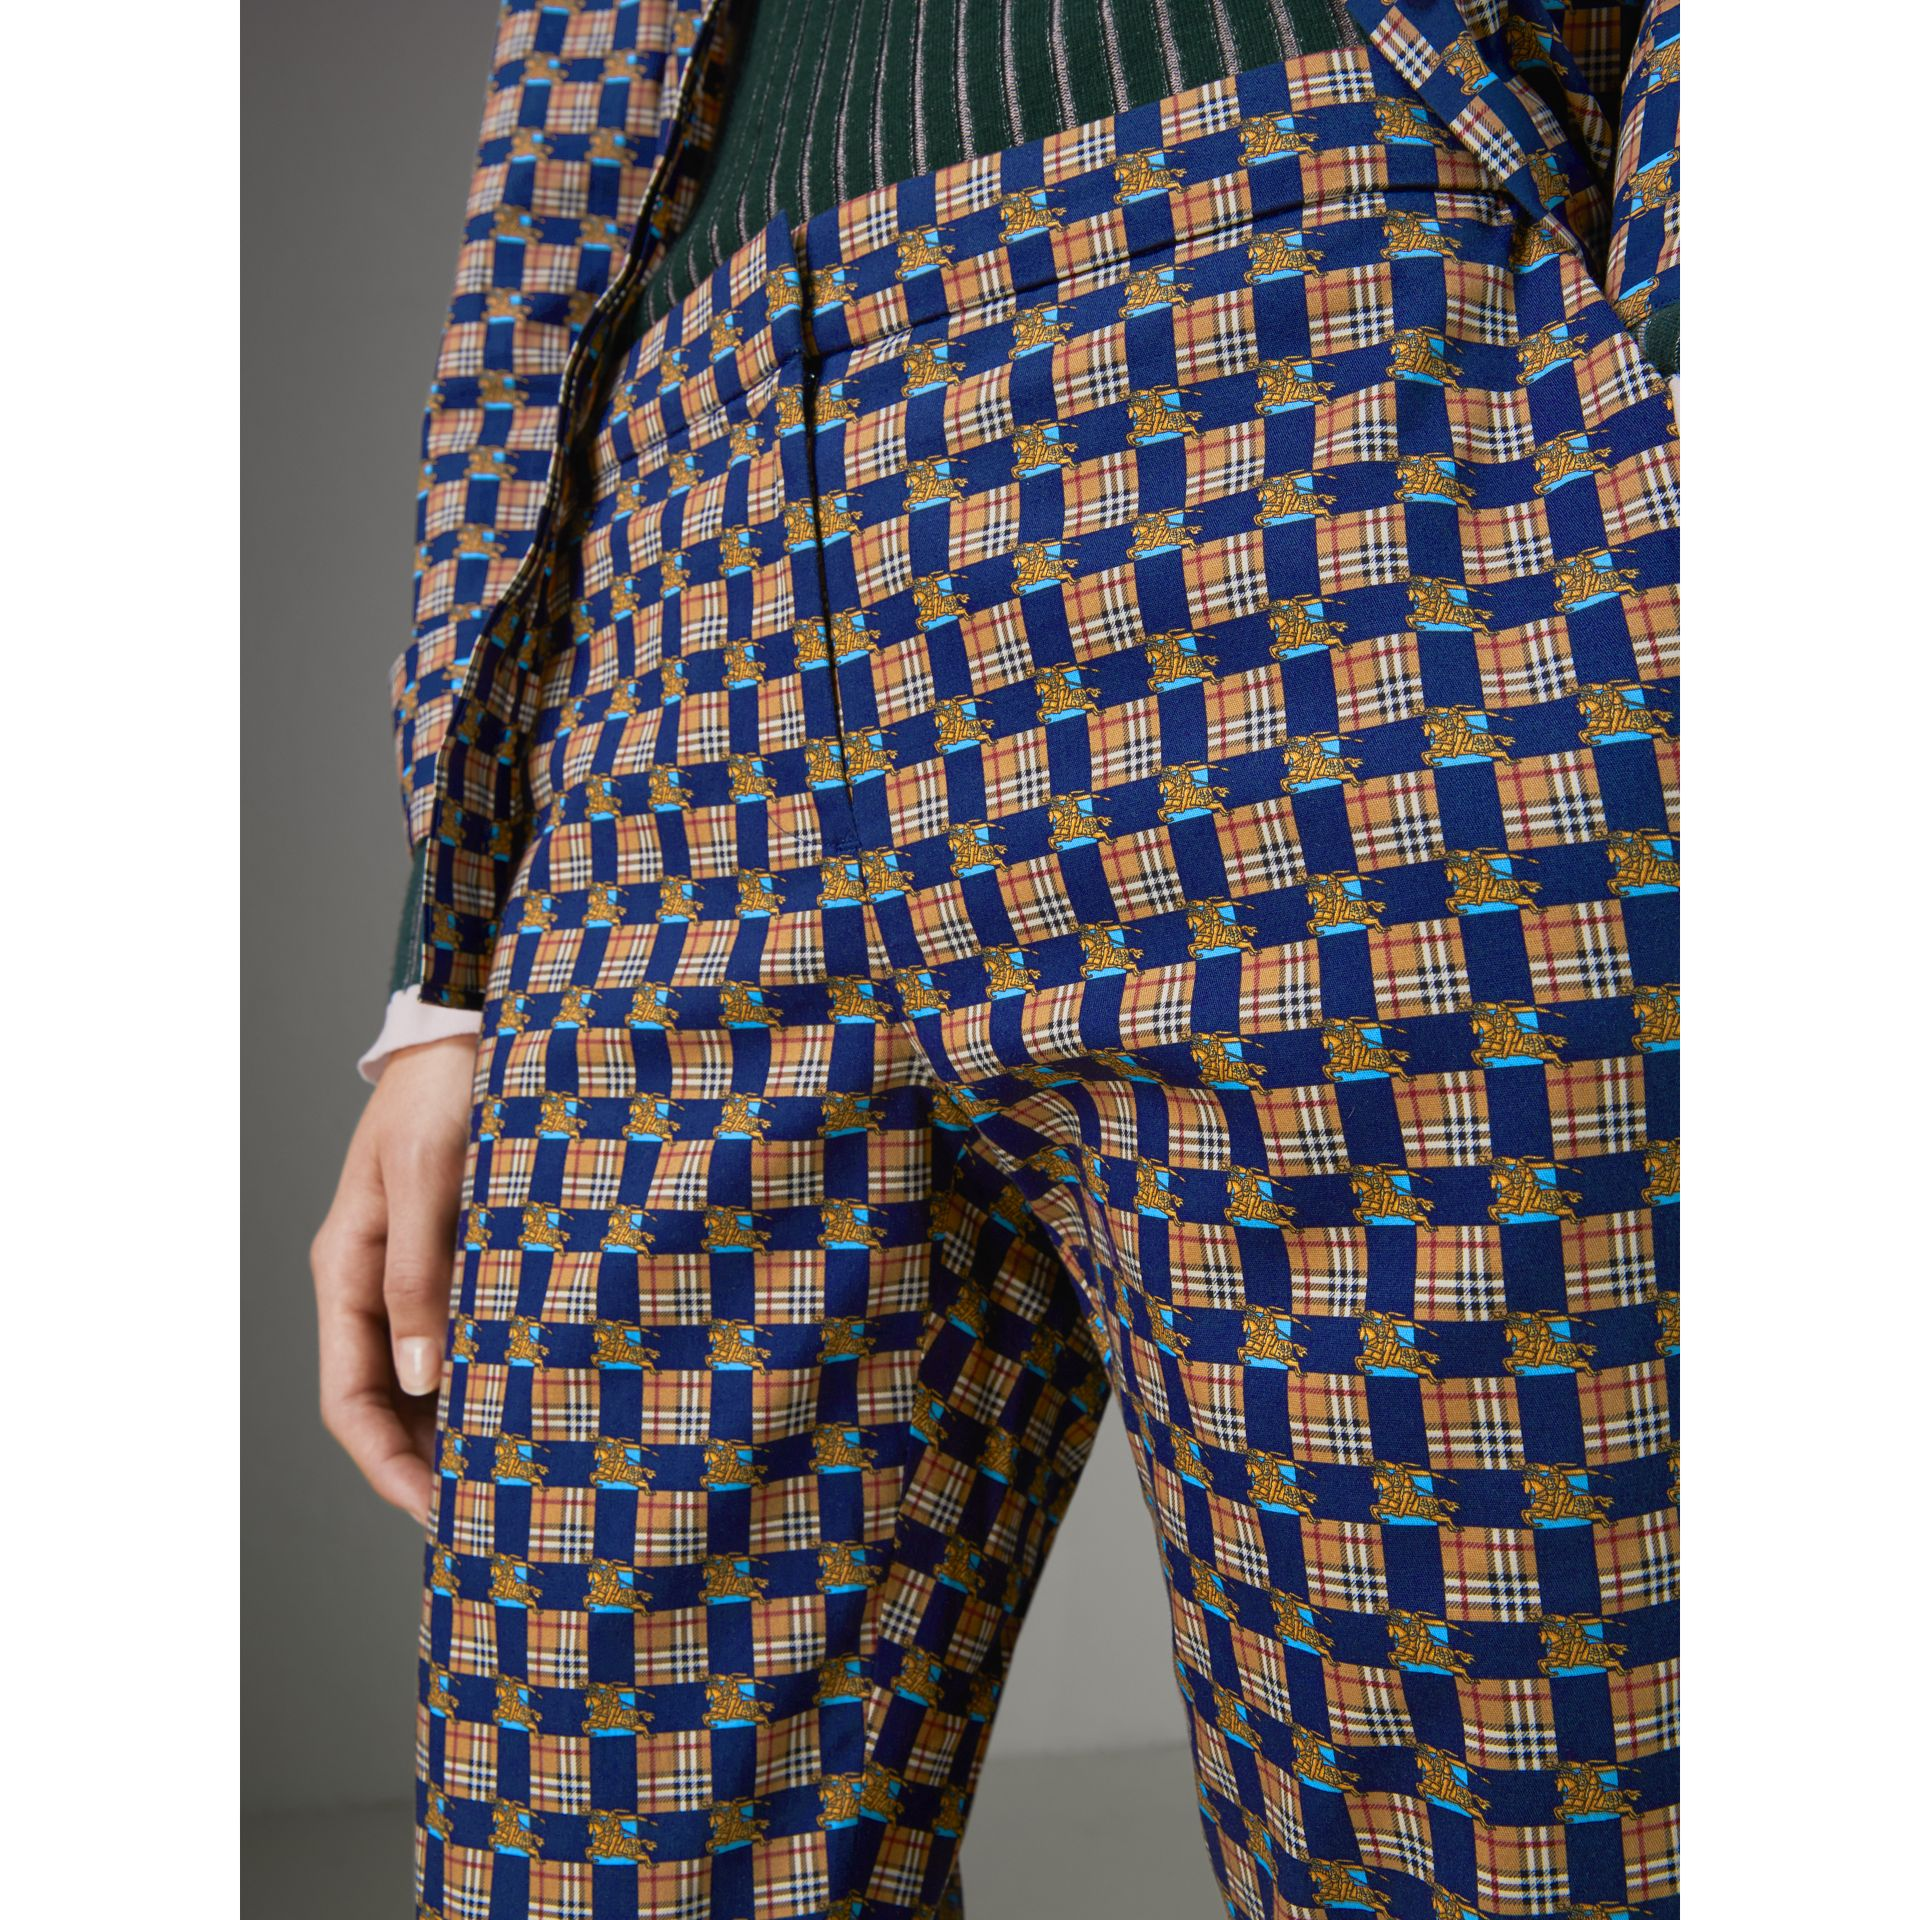 Tiled Archive Print Stretch Cotton Cigarette Trousers in Navy - Women | Burberry Australia - gallery image 1